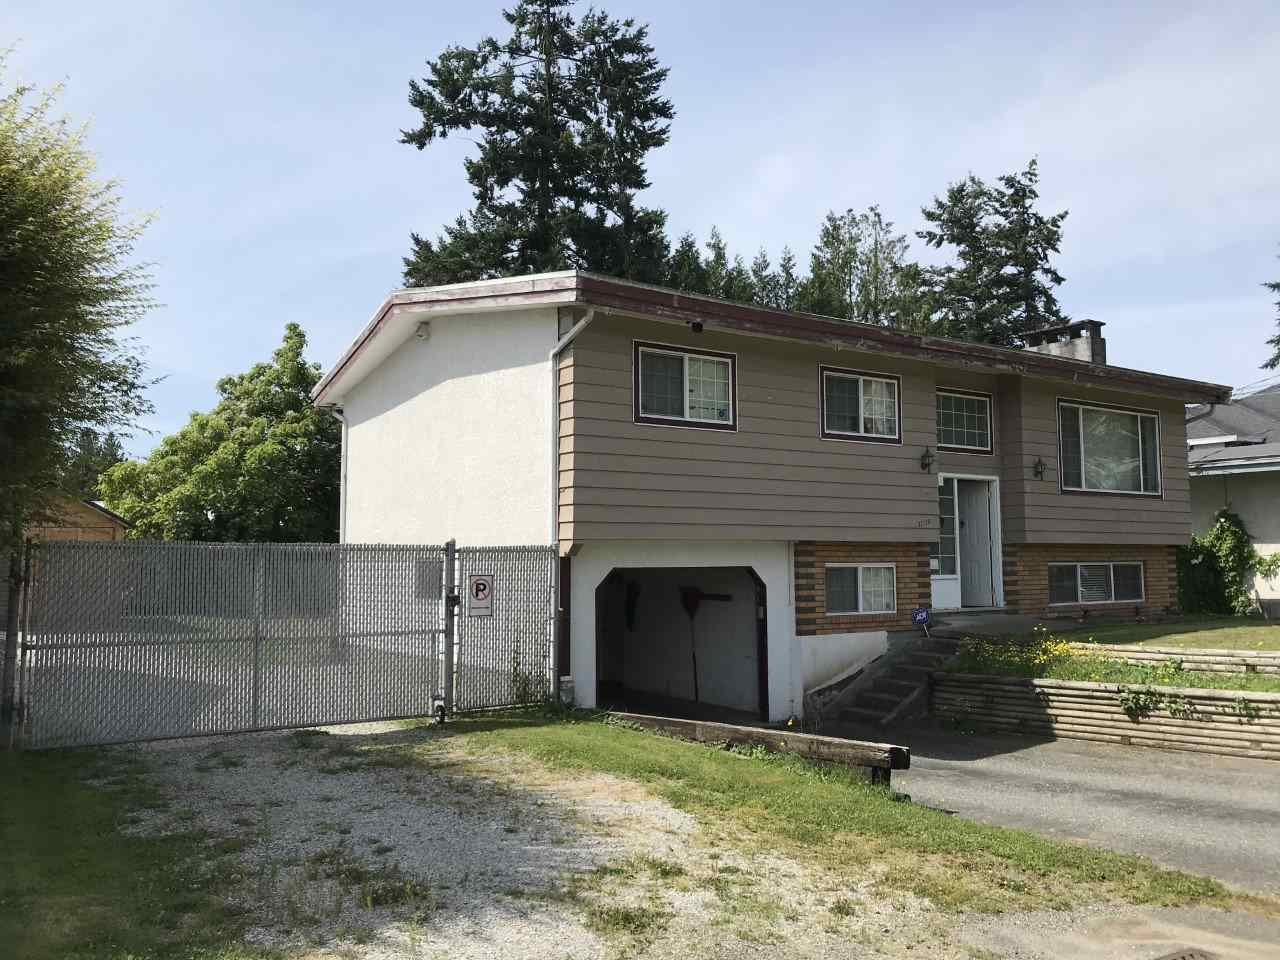 Main Photo: 32118 DORMICK Avenue in Abbotsford: Abbotsford West House for sale : MLS®# R2479099